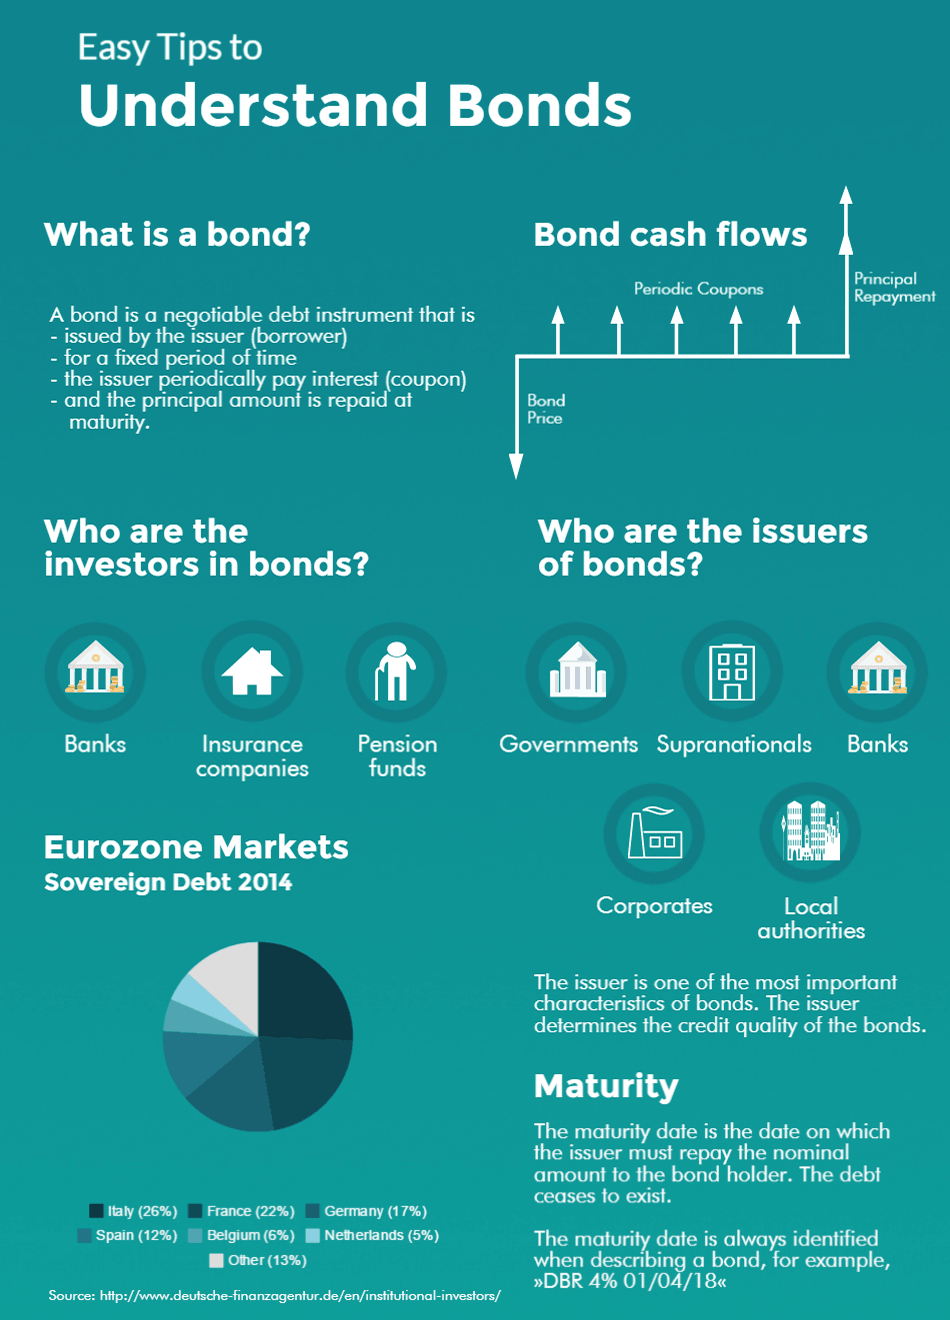 Tips to Understand Bonds